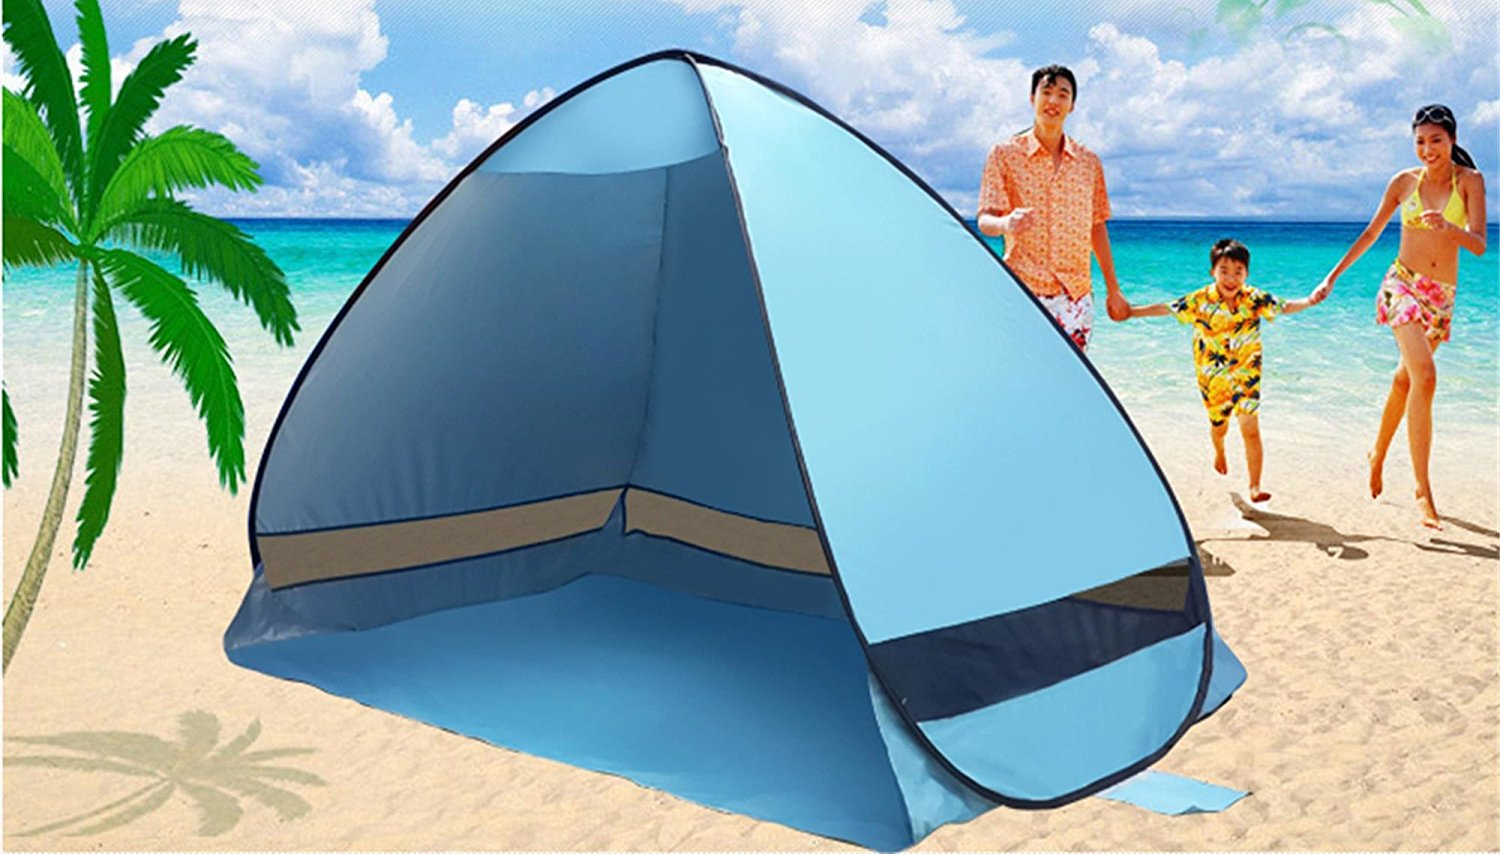 Outdoor 2 3 Persons Sun Shelter Portable Pop Up Instant Cabana Canopy Anti Uv Shade For Camping Fishing Picnic Beach Lake Park